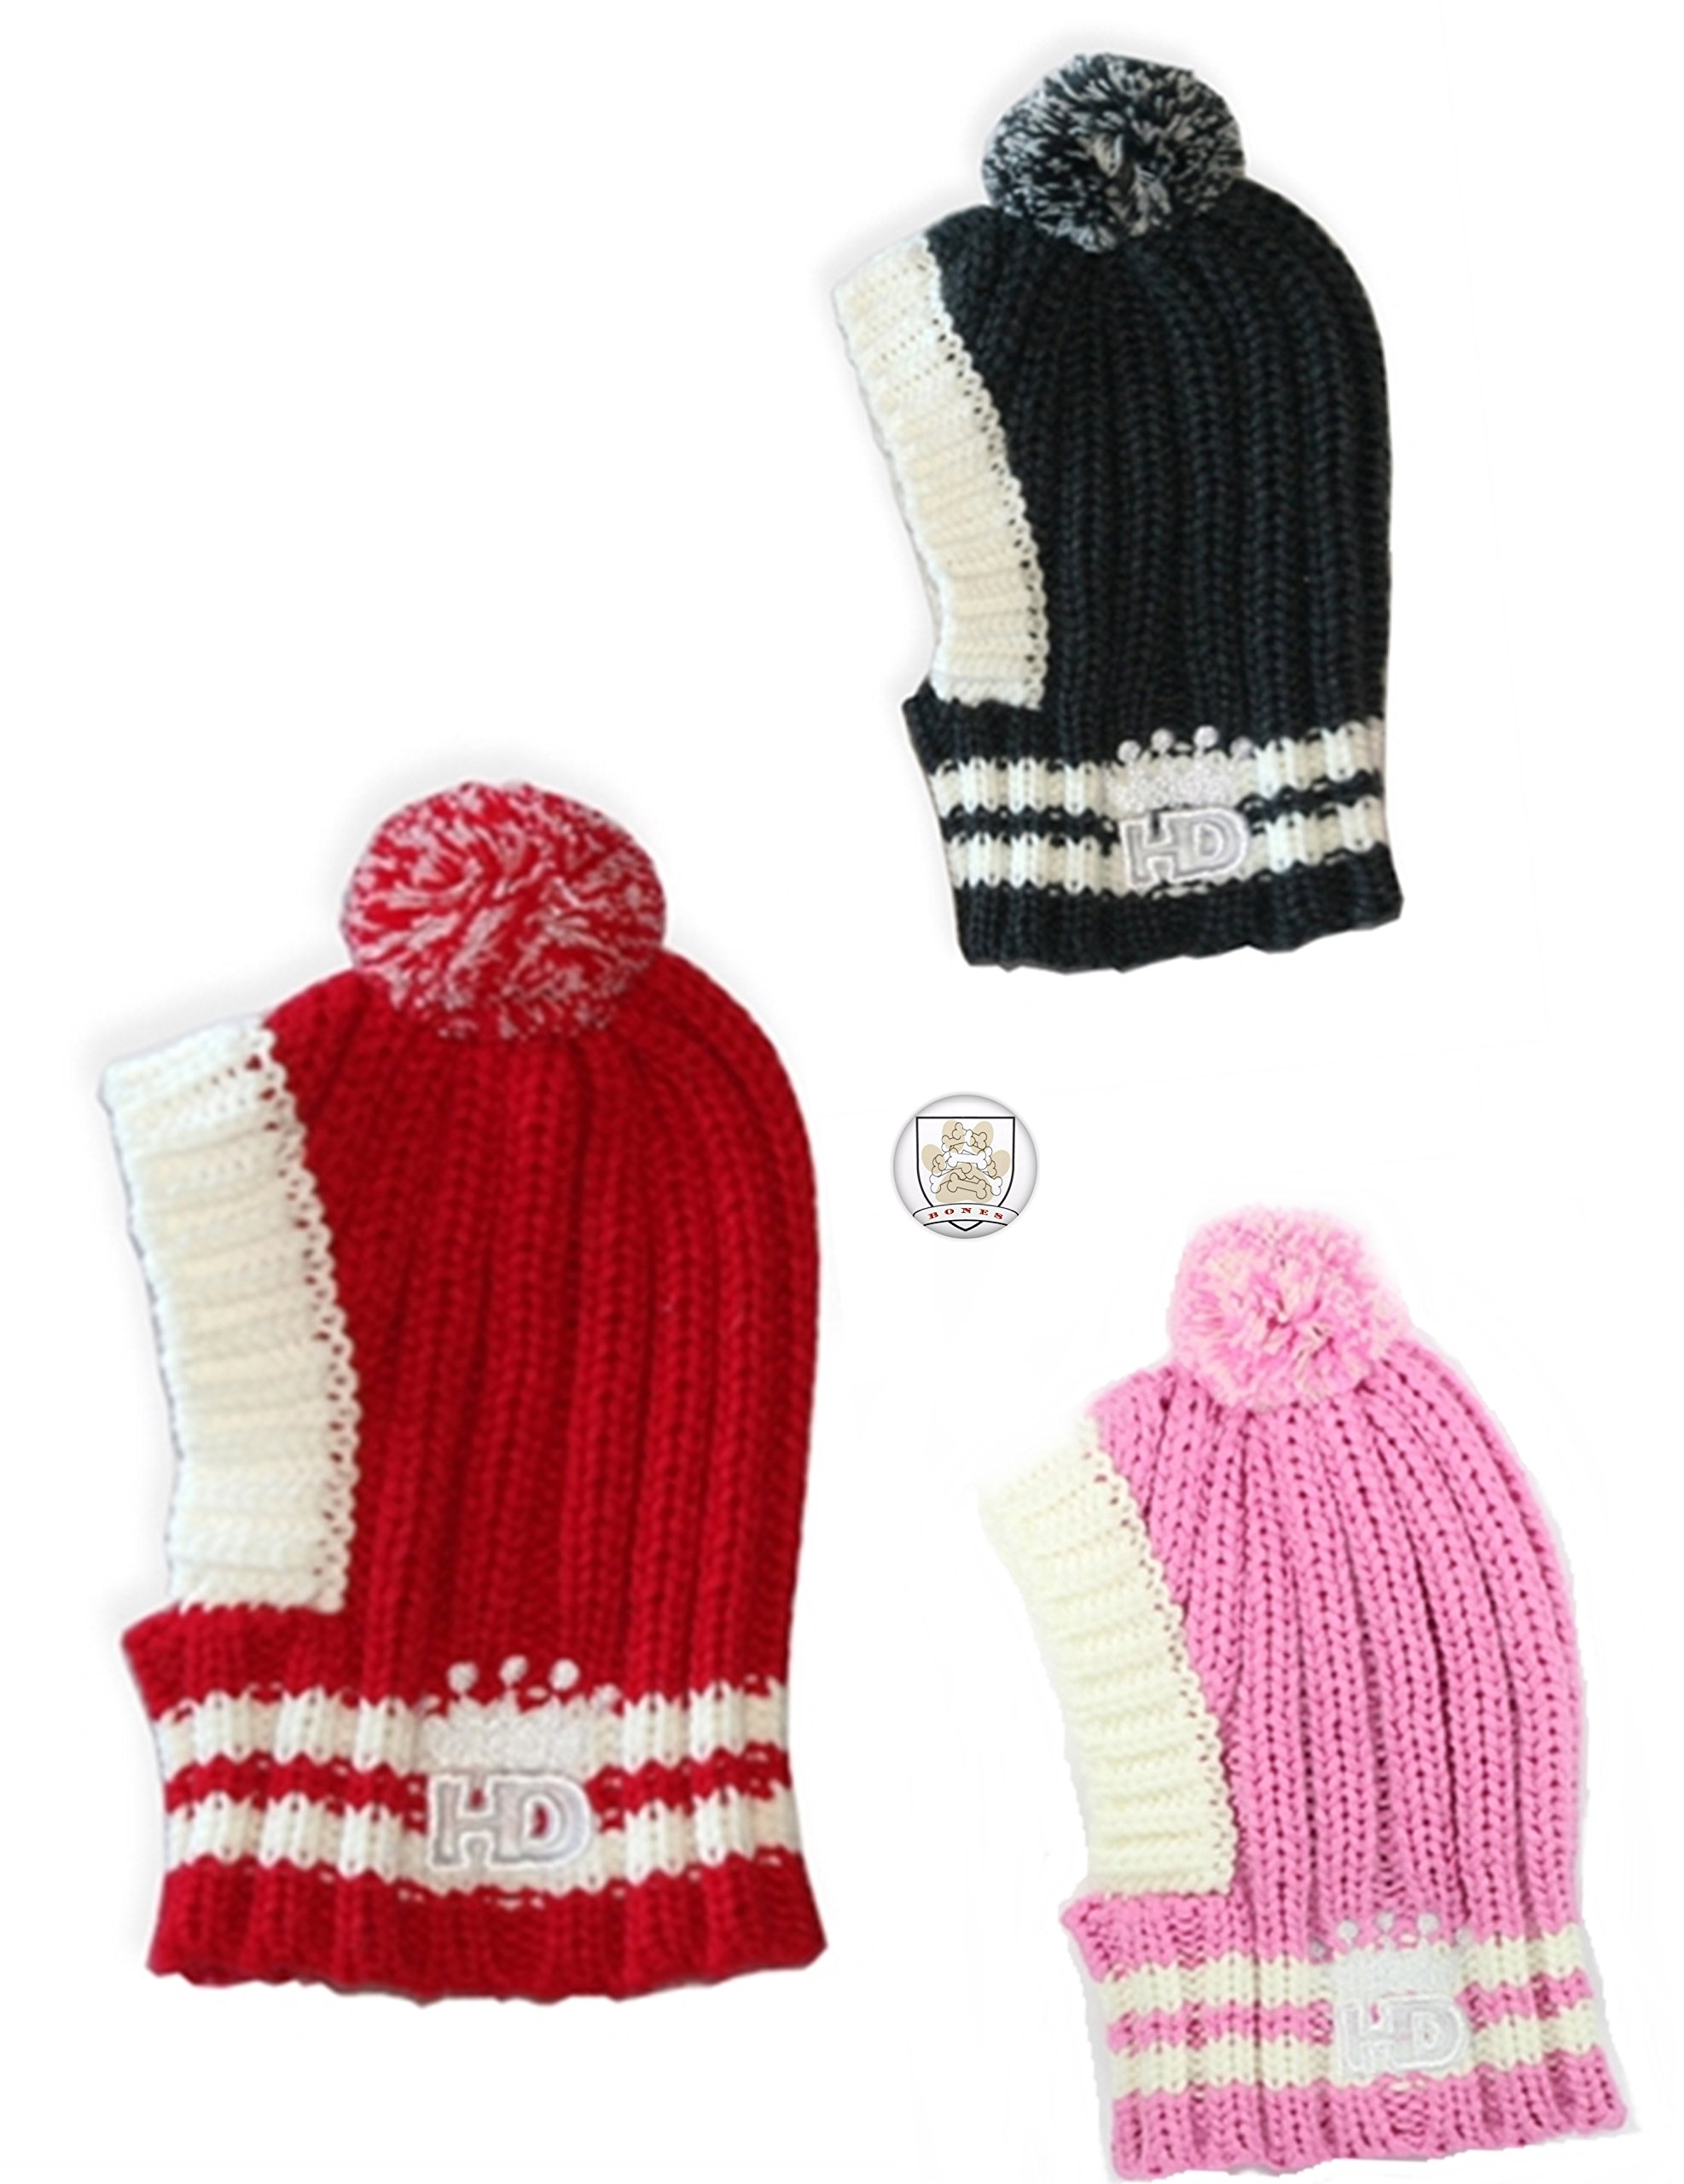 Hip Doggie Thick Ribbed Knit Hat - Pullover Styled - with Pom-Pom and Button - for Dogs 50-110 lbs - Size (Large, Soft Pink) by Hip Doggie